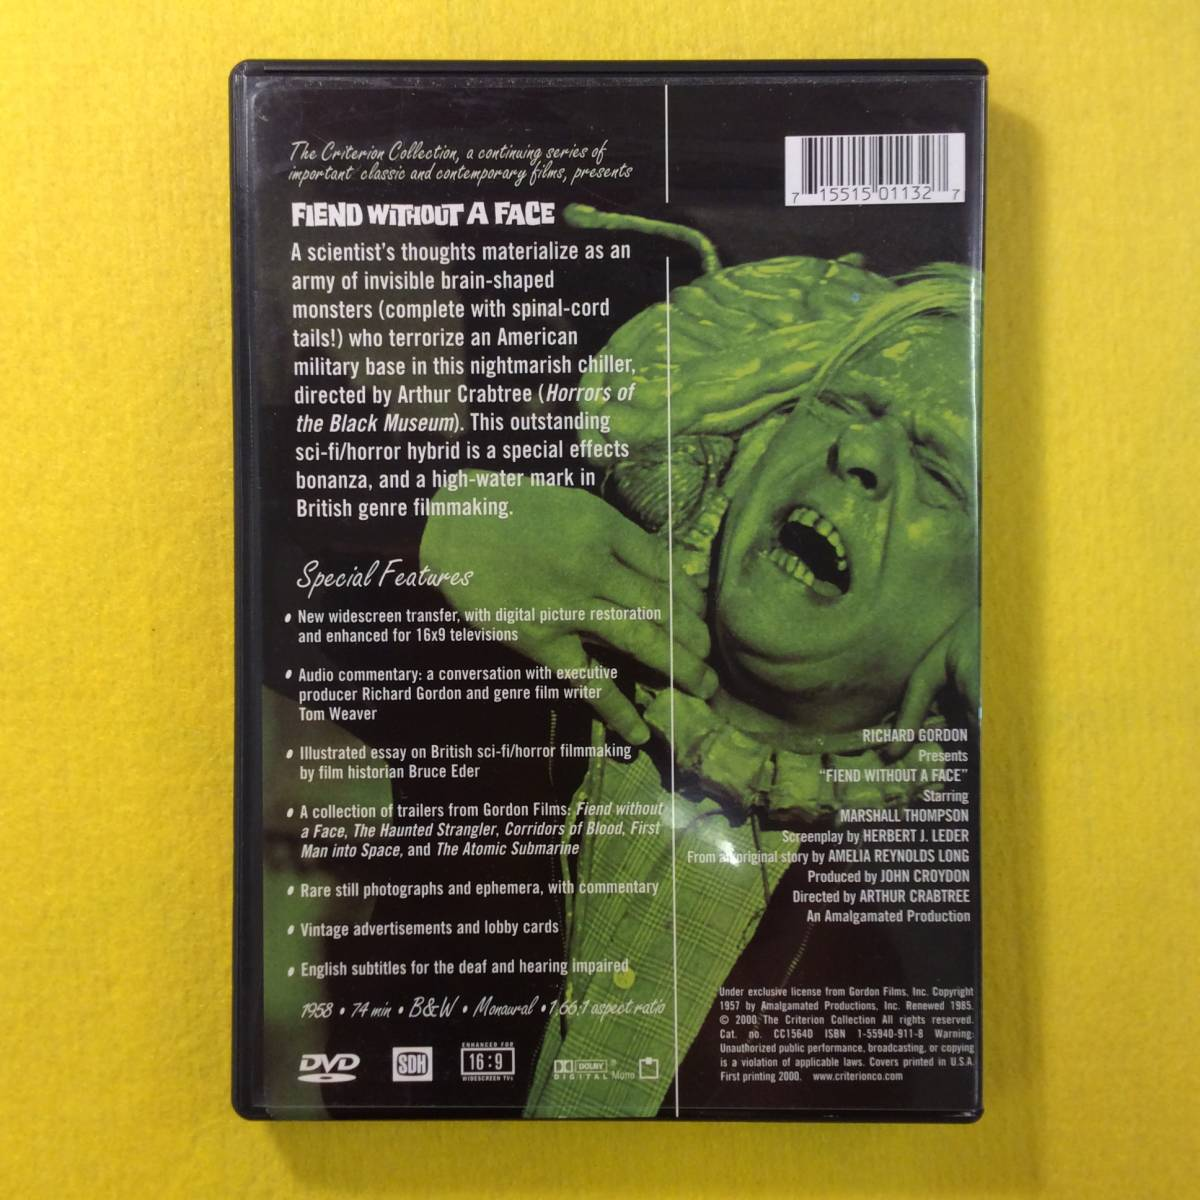 【DVD】FIEND WITHOUT A FACE・輸入盤 リージョン1 SF SciFi 映画_画像2